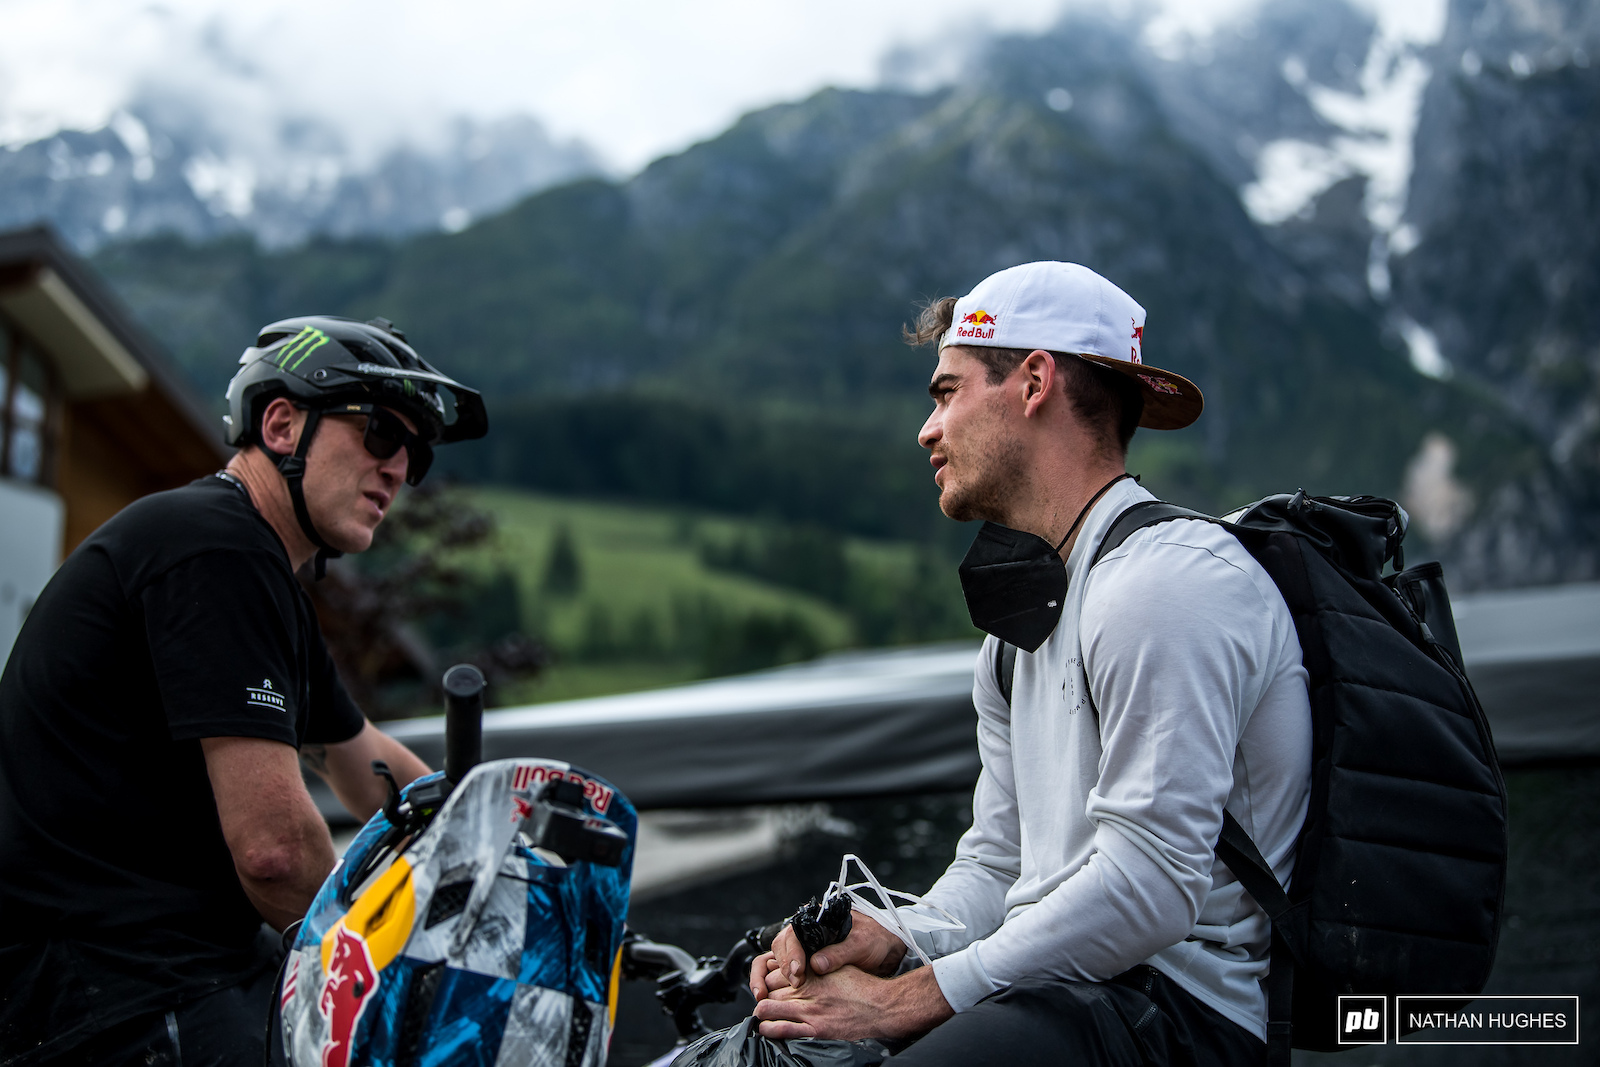 Bruni chats with Steve Peat heading home for some quality Austrian schnitzel.